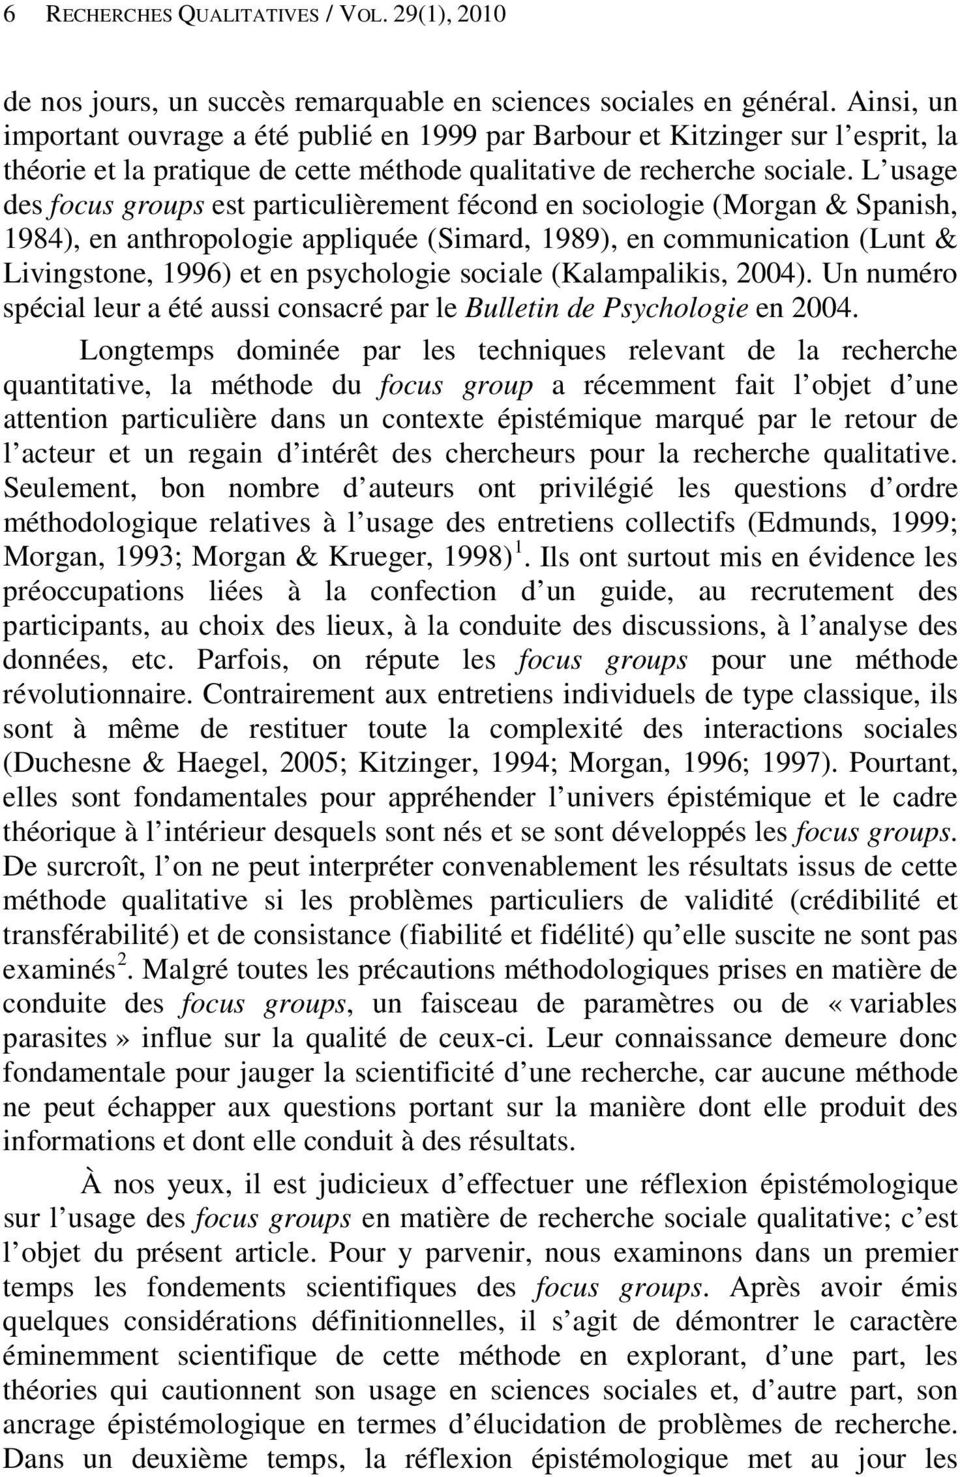 L usage des focus groups est particulièrement fécond en sociologie (Morgan & Spanish, 1984), en anthropologie appliquée (Simard, 1989), en communication (Lunt & Livingstone, 1996) et en psychologie